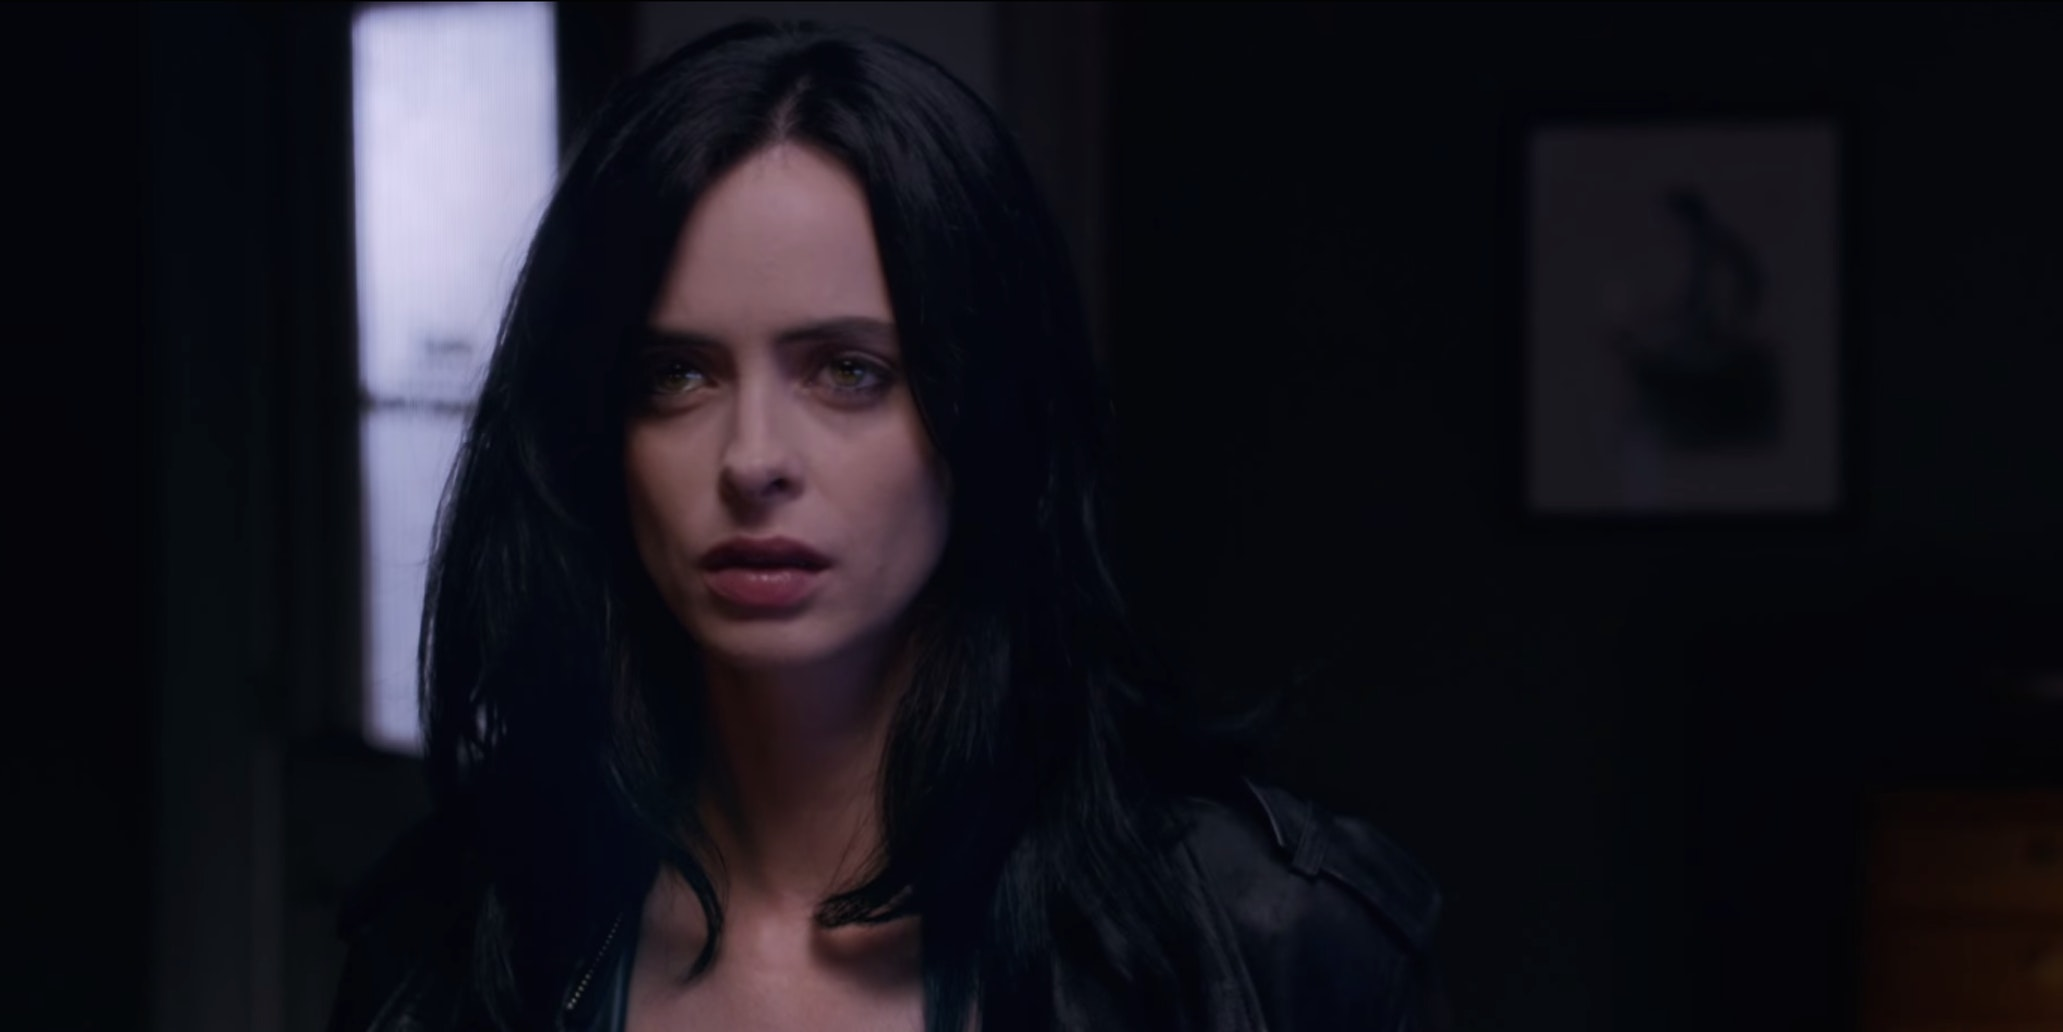 Krysten Ritter's New 'Jessica Jones' Teaser Trailers Show That Netflix and Marvel Sure Are Milking It